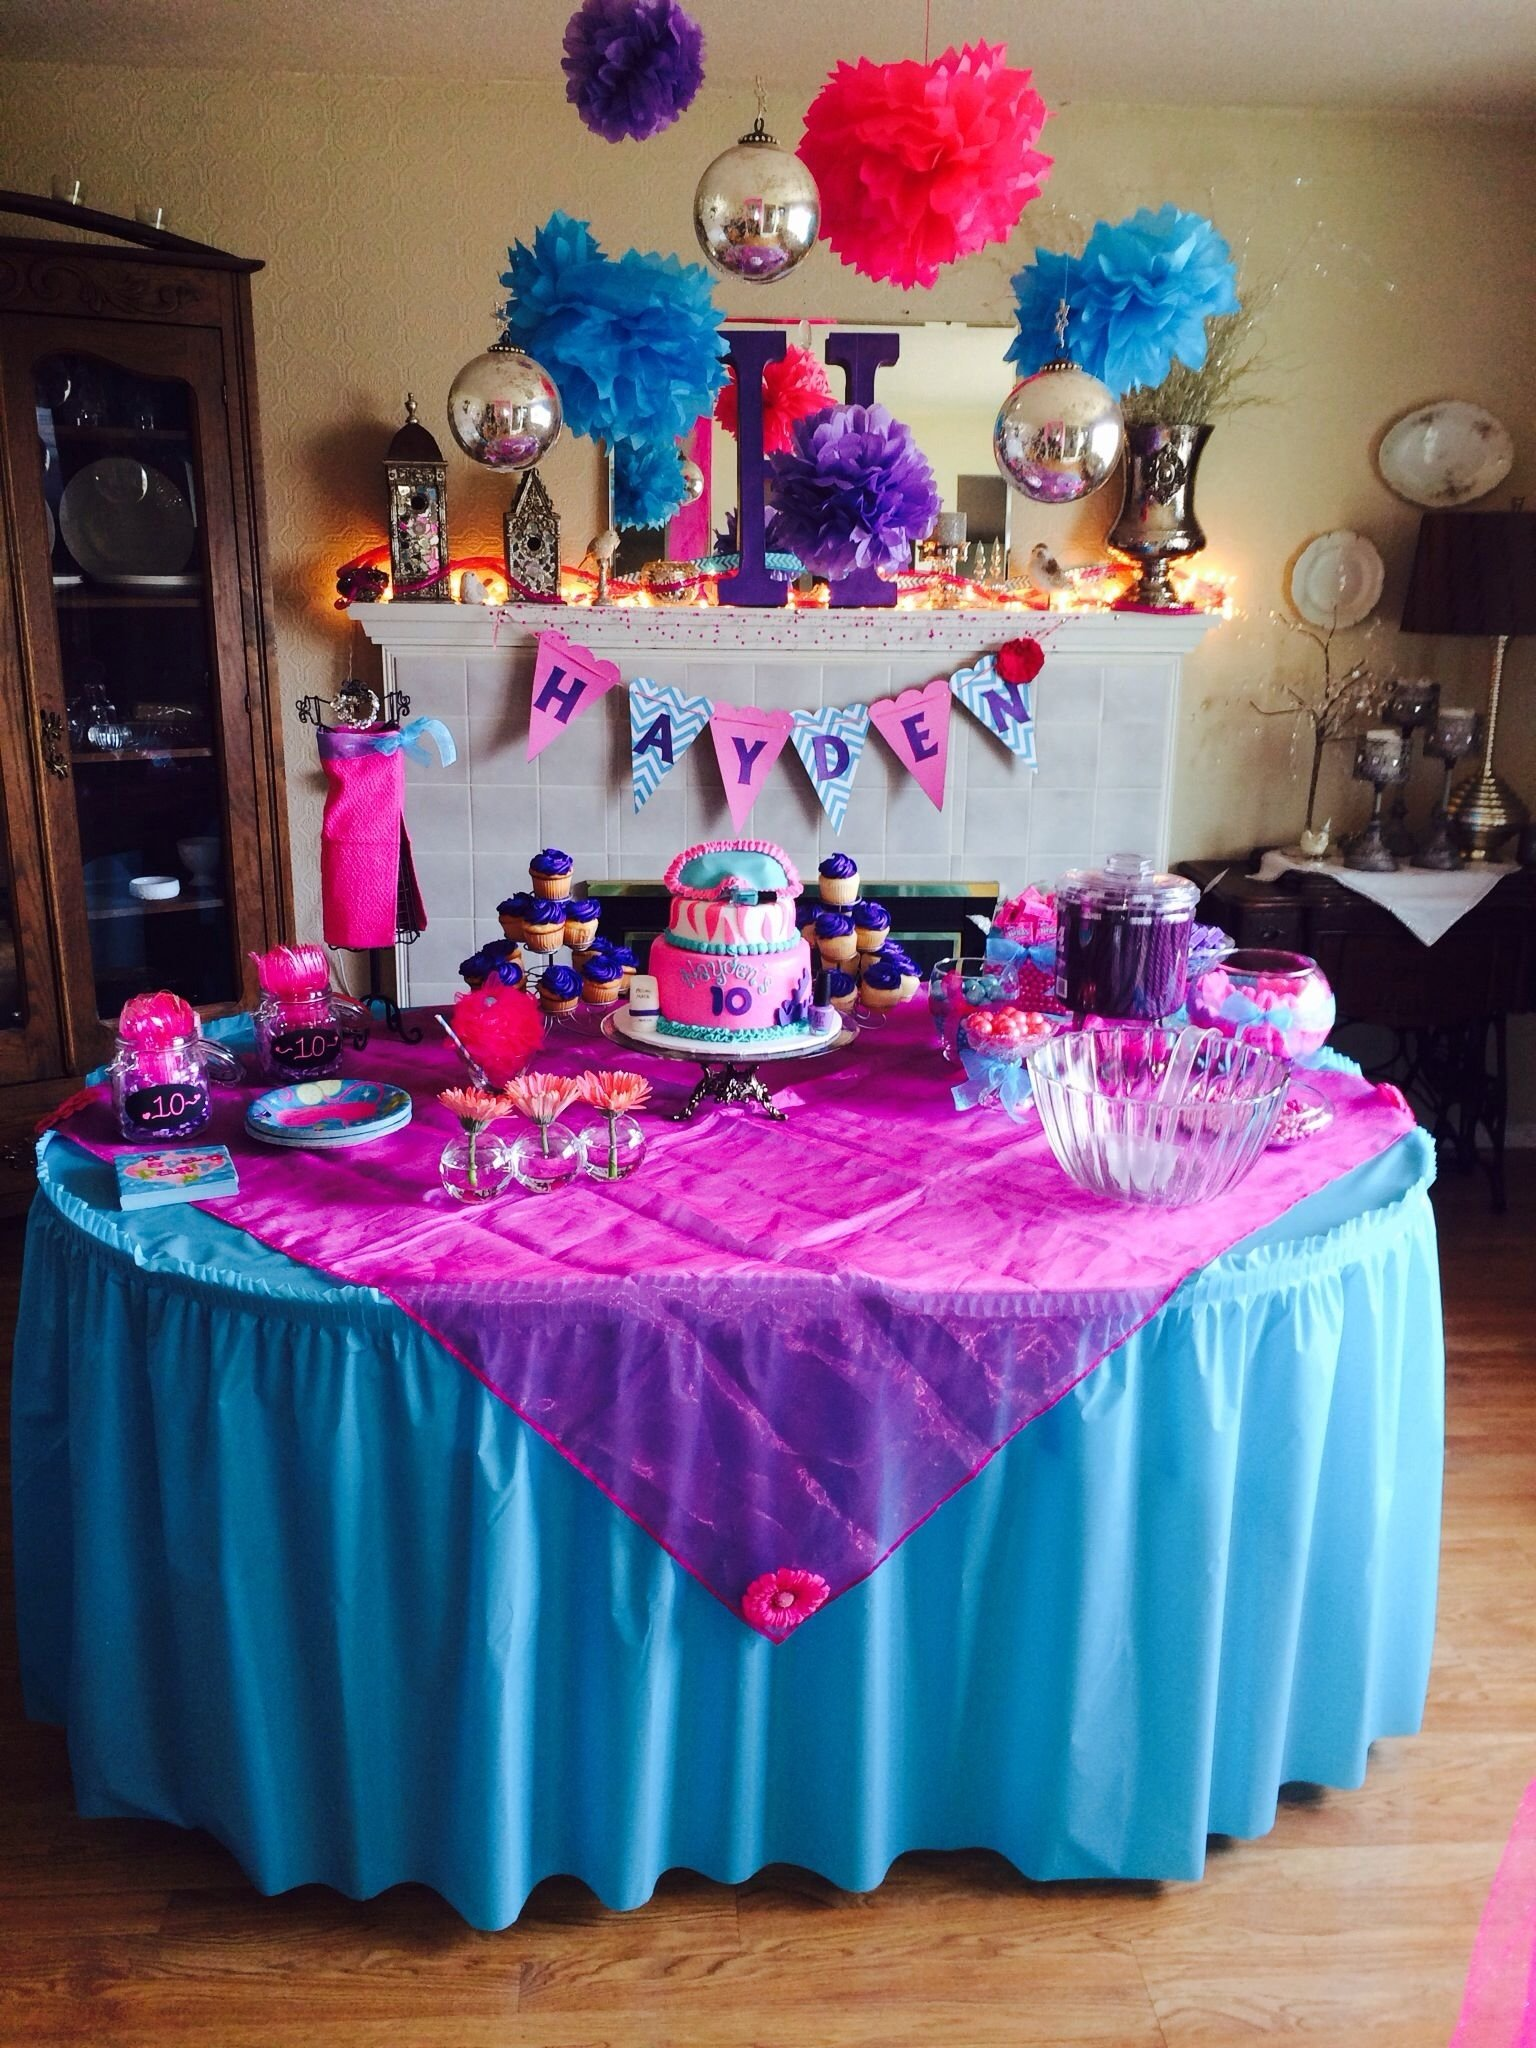 10 Best 10 Year Old Party Ideas girls 10th birthday party party ideas pinterest 10th birthday 4 2021